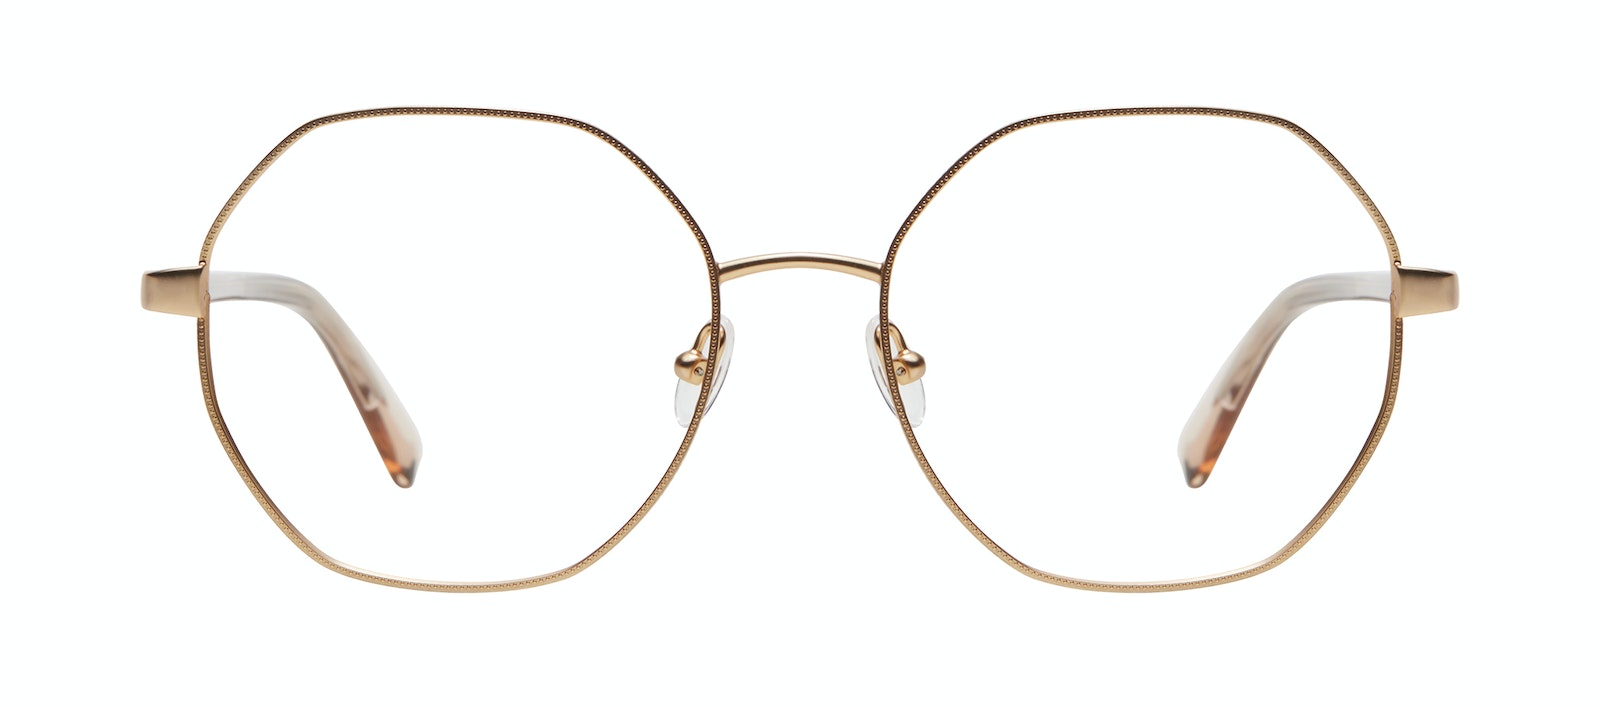 Affordable Fashion Glasses Round Eyeglasses Women Fantasy Matte Gold Front